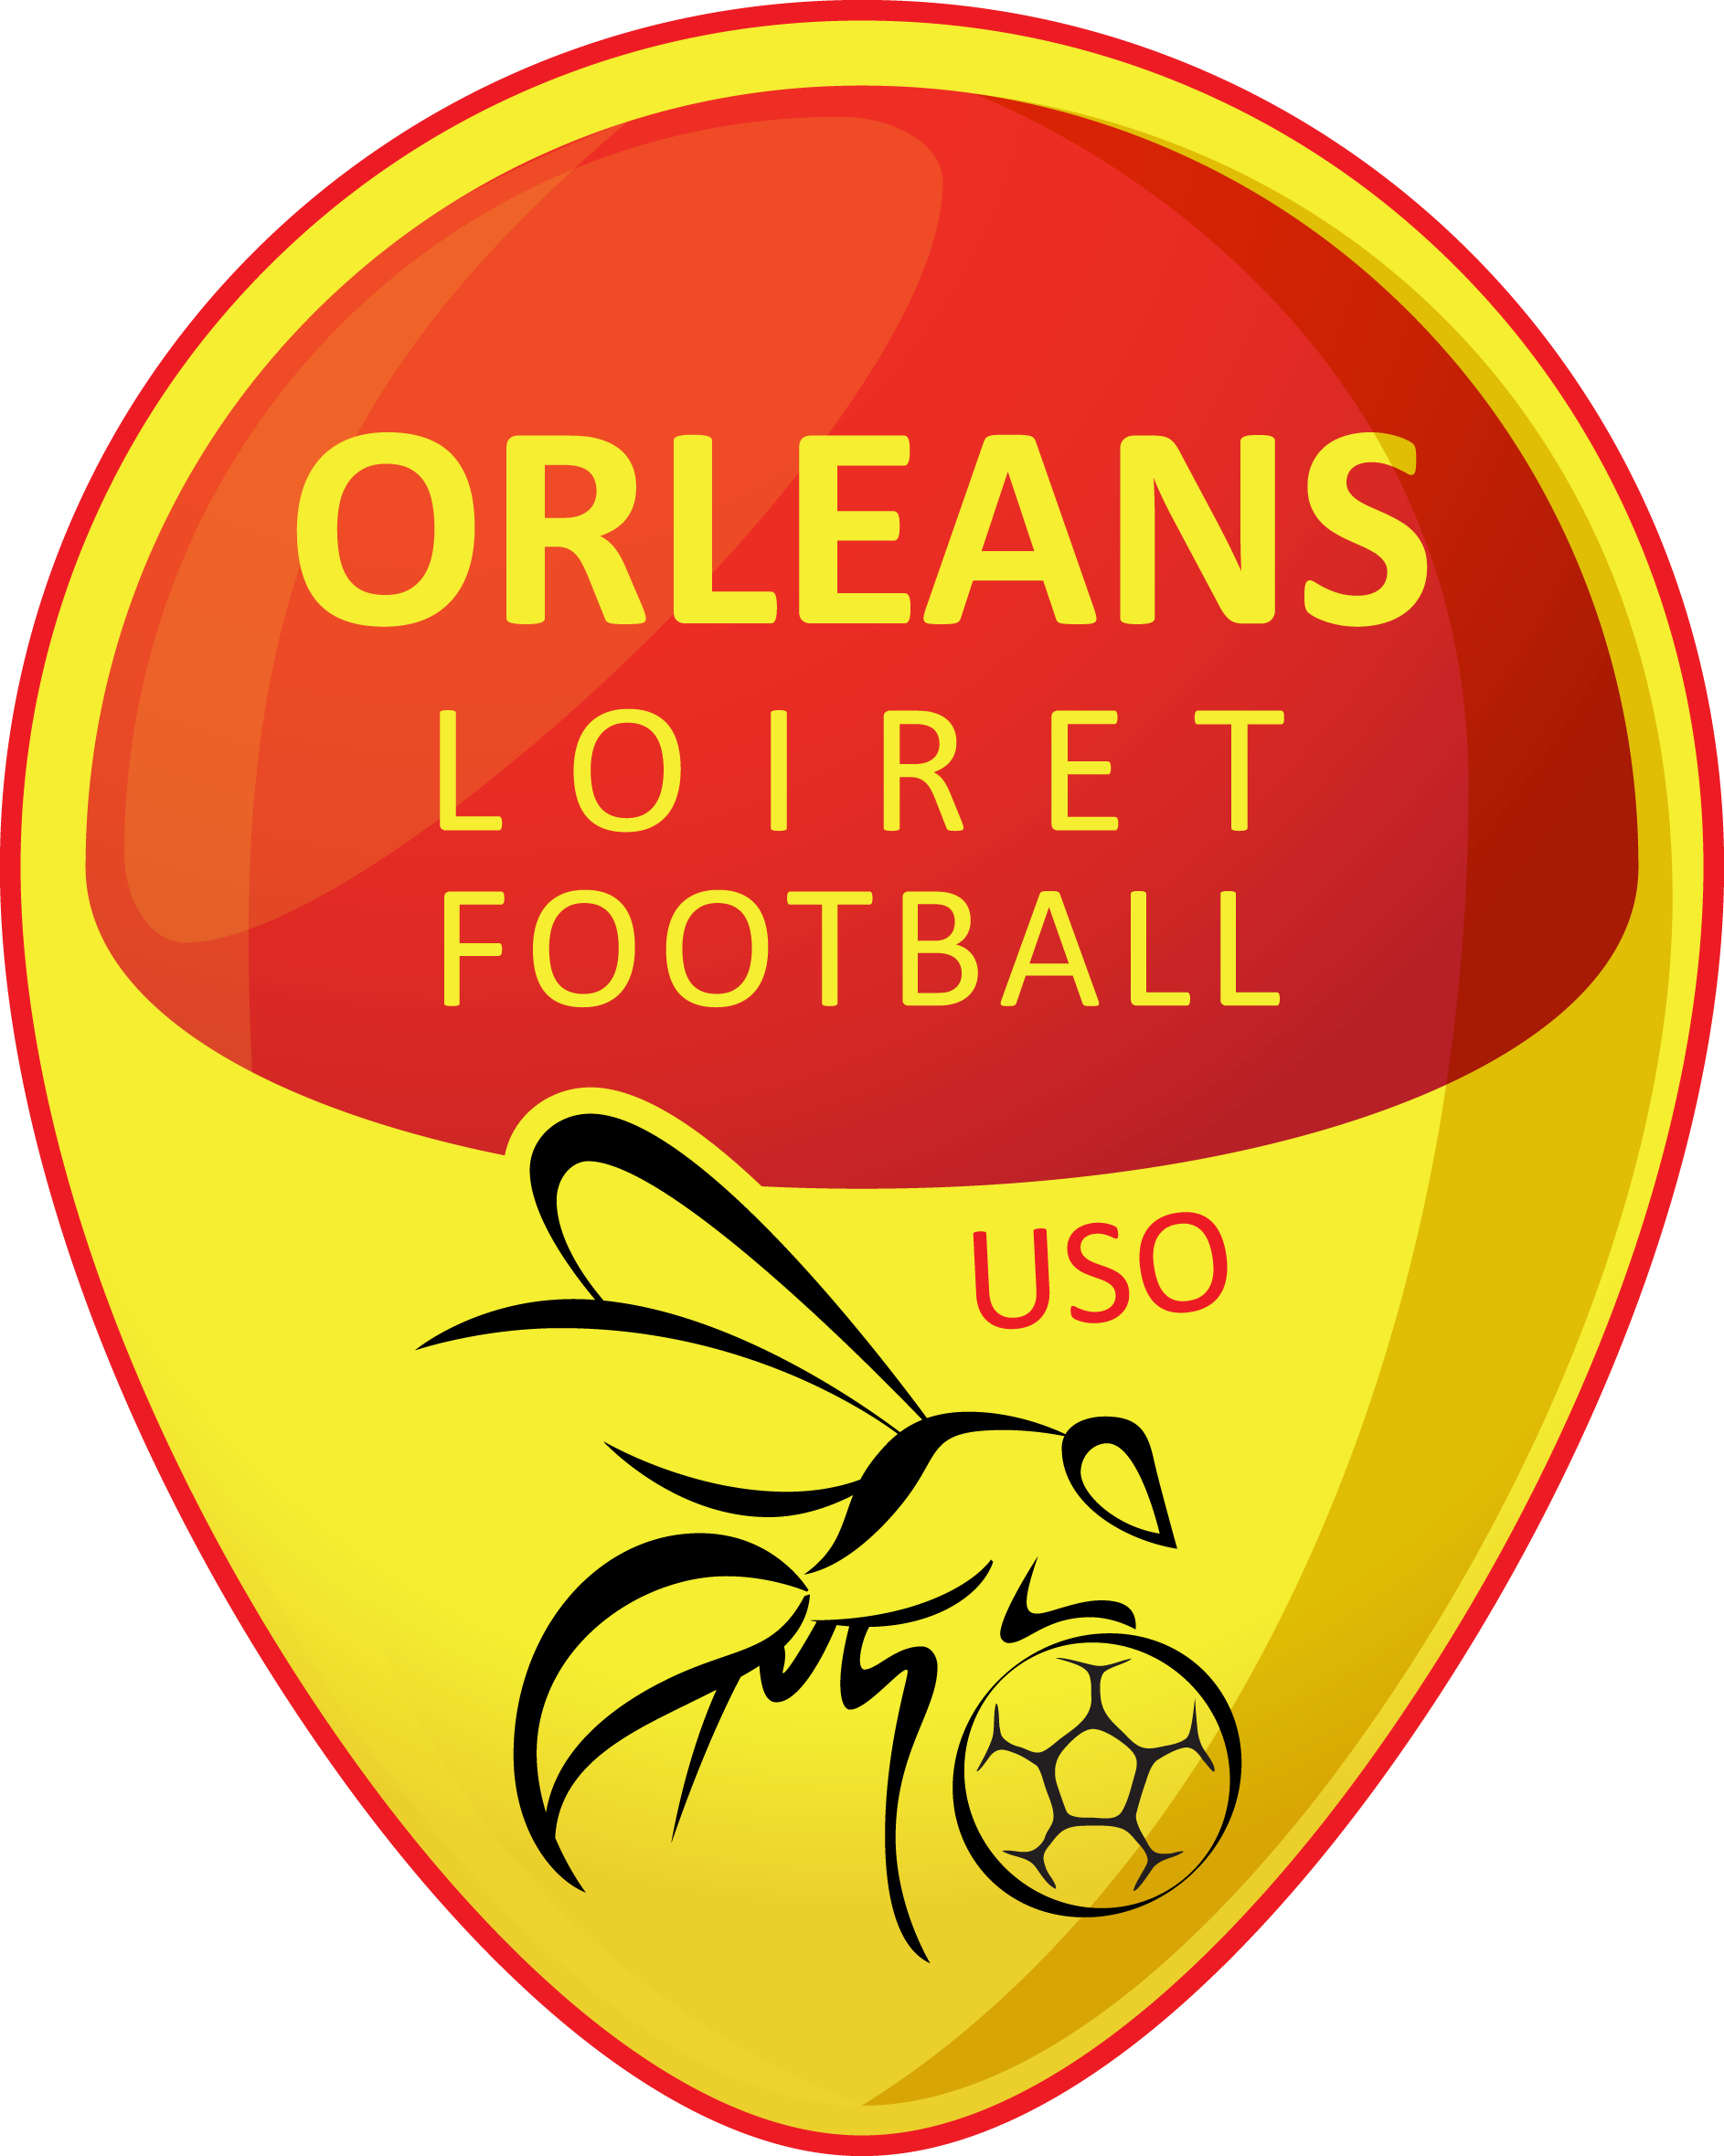 Union Sportive Orléans Loiret Football 45